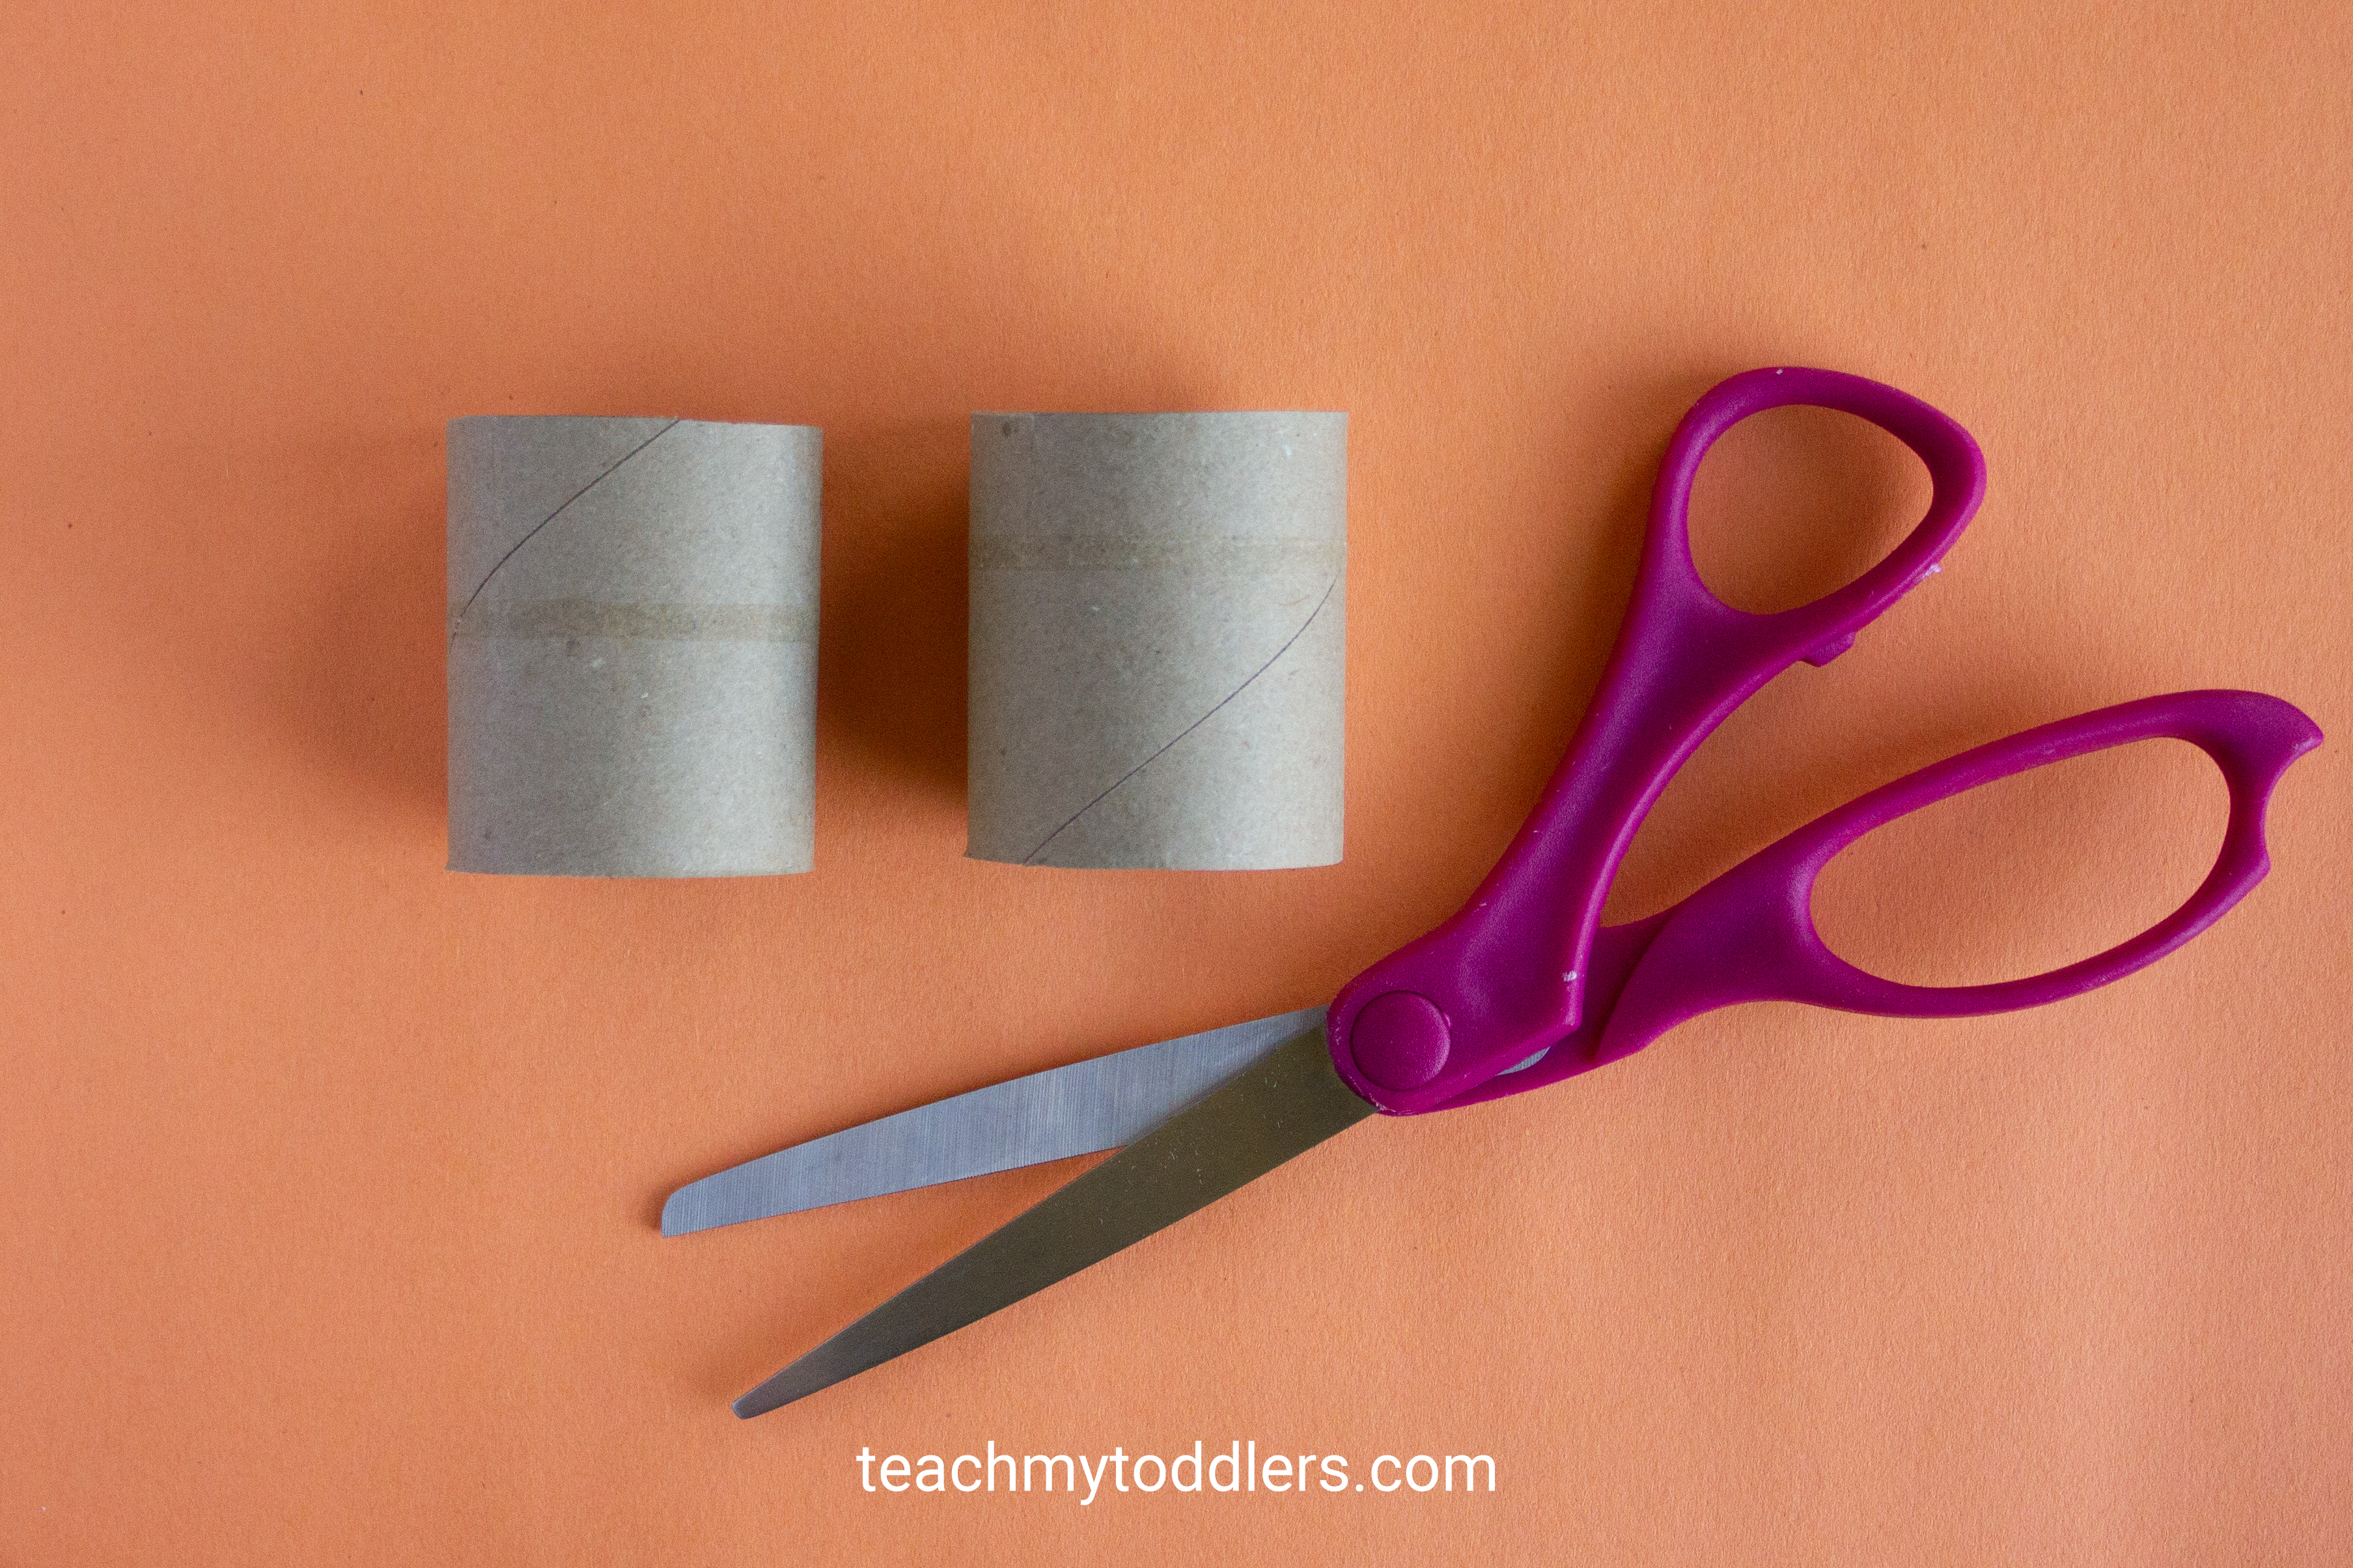 Find out how to make this fun paper bat craft for toddler's halloween activity